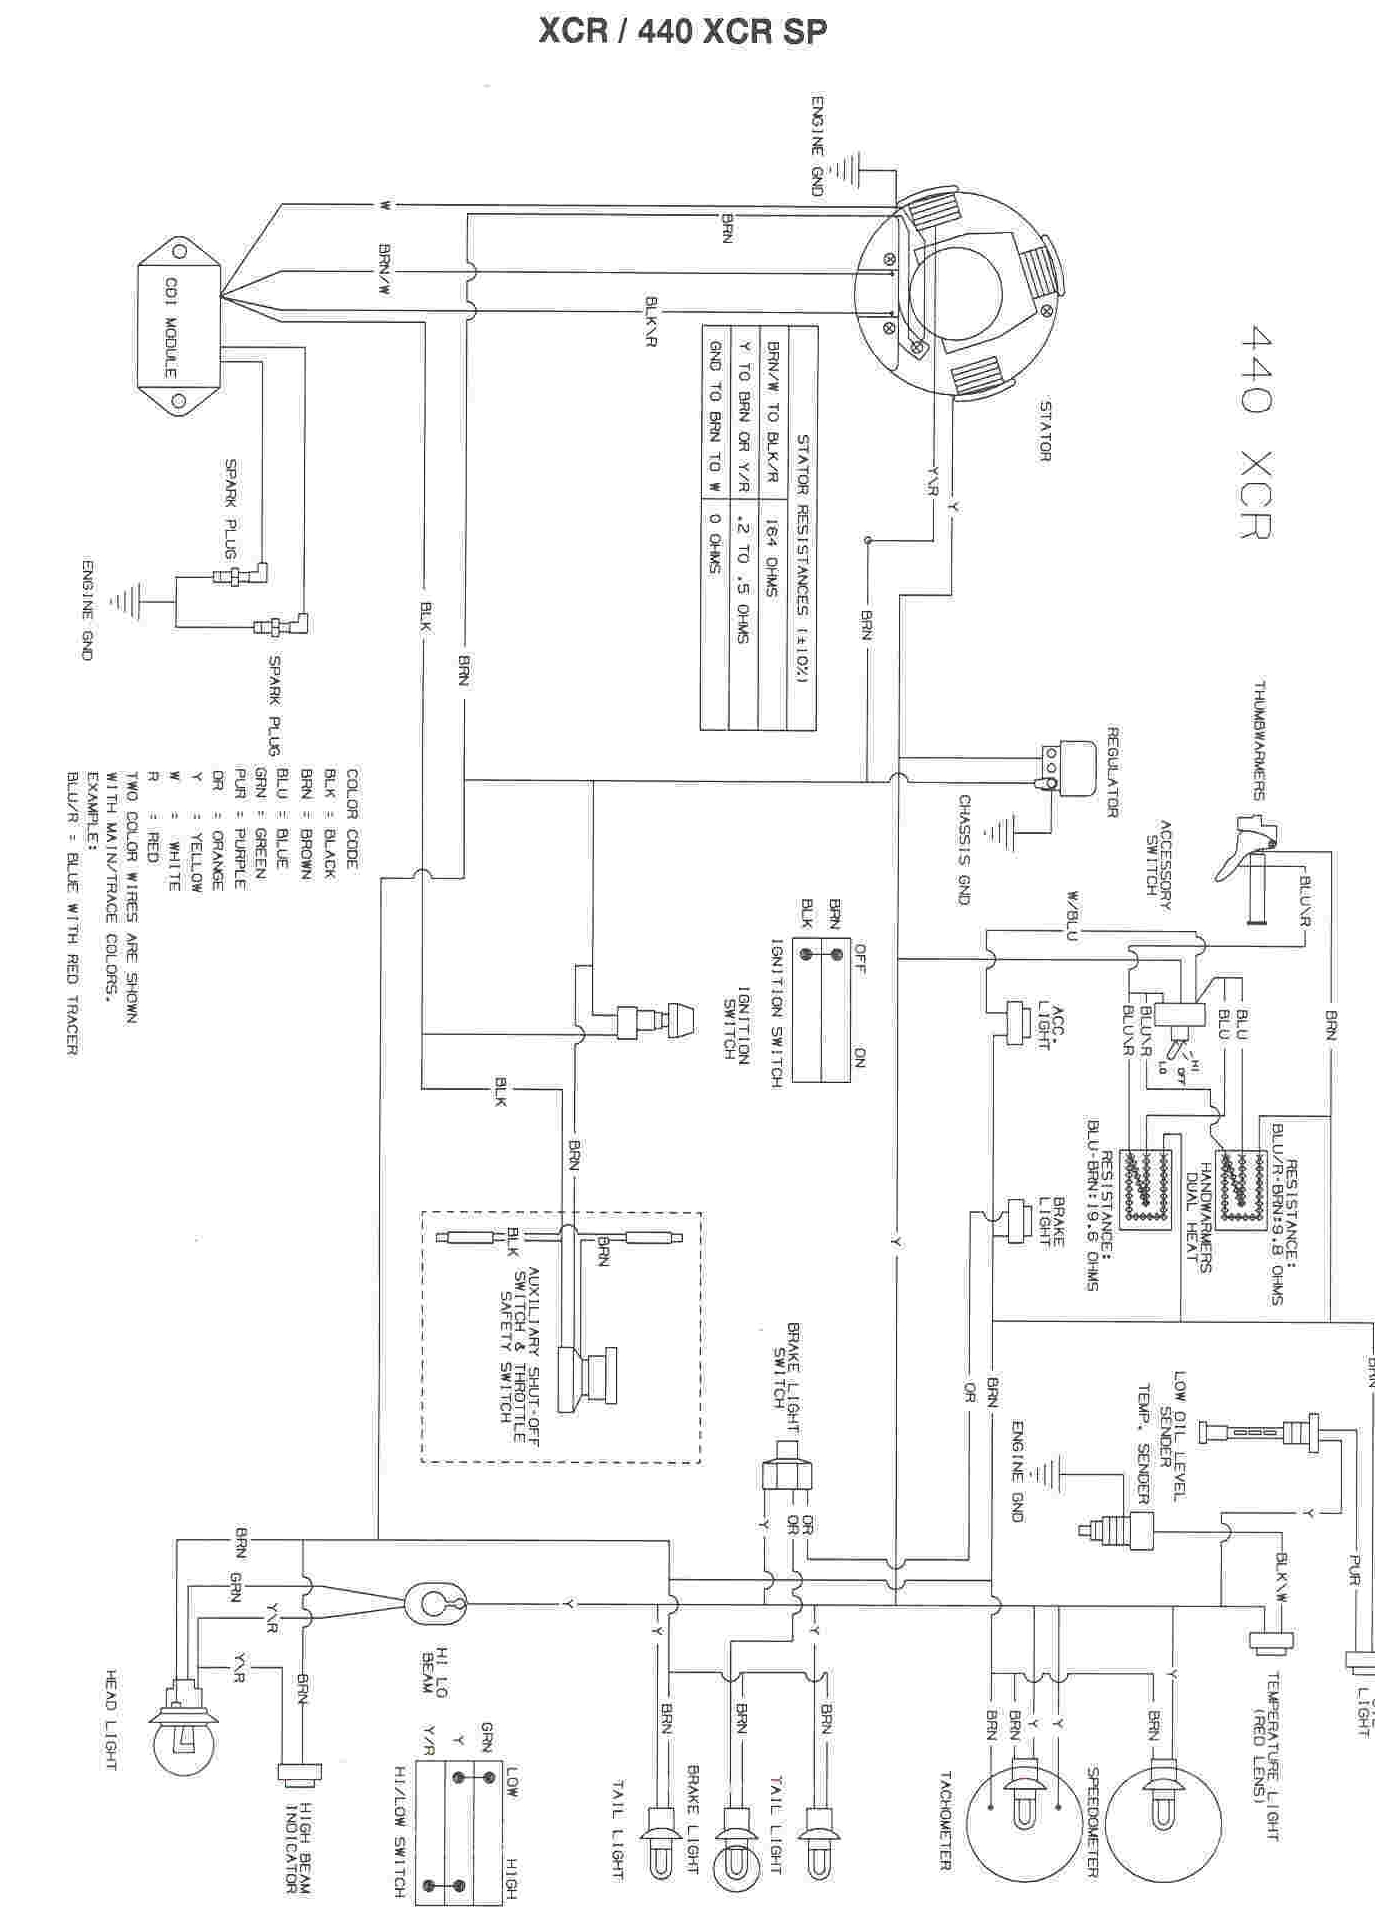 ford 9n wiring schematic | free wiring diagram ford 9n electrical wiring